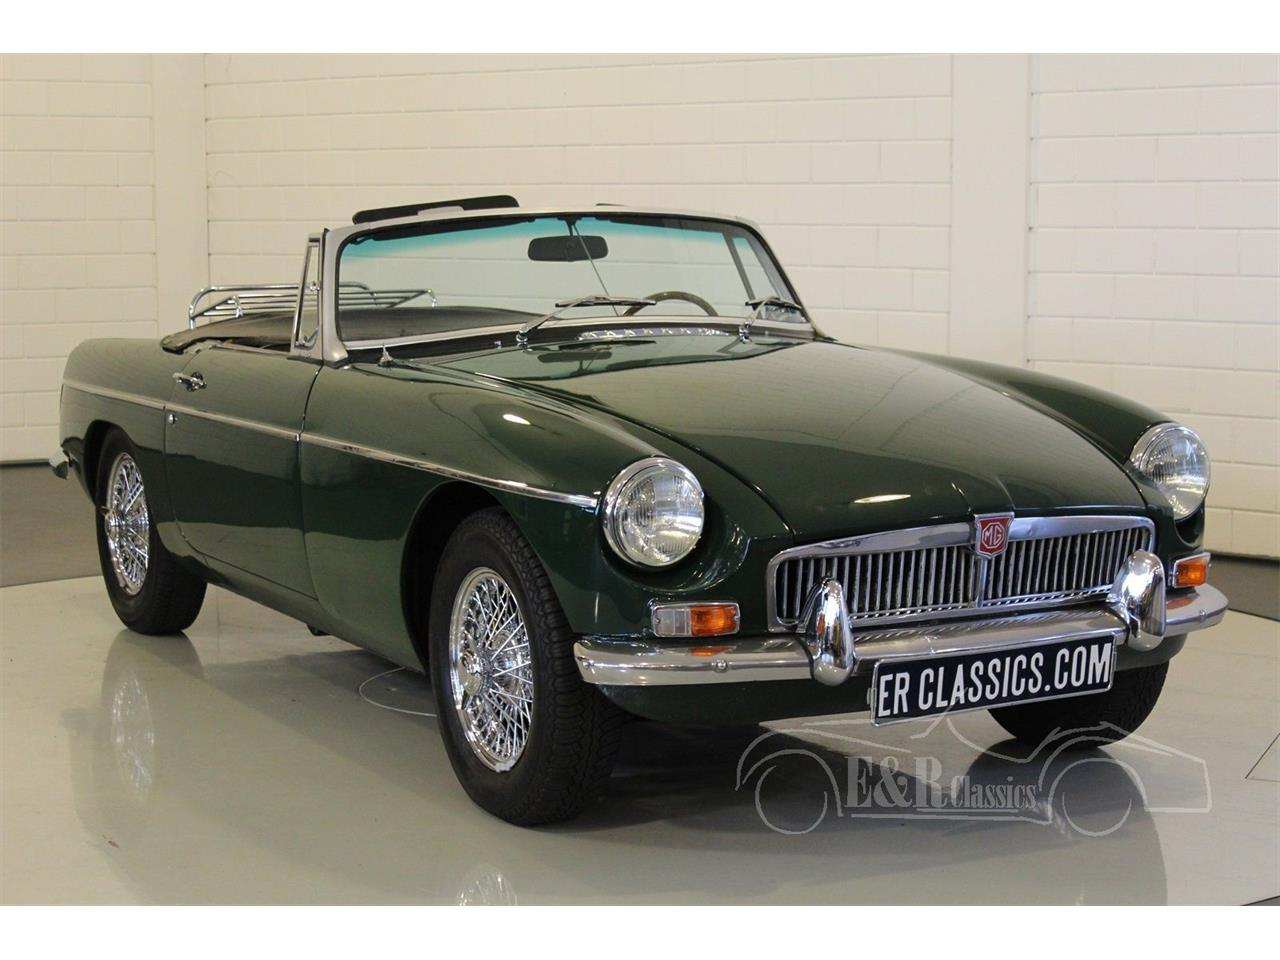 Large Picture of Classic '64 MG MGB - $27,950.00 Offered by E & R Classics - Q178